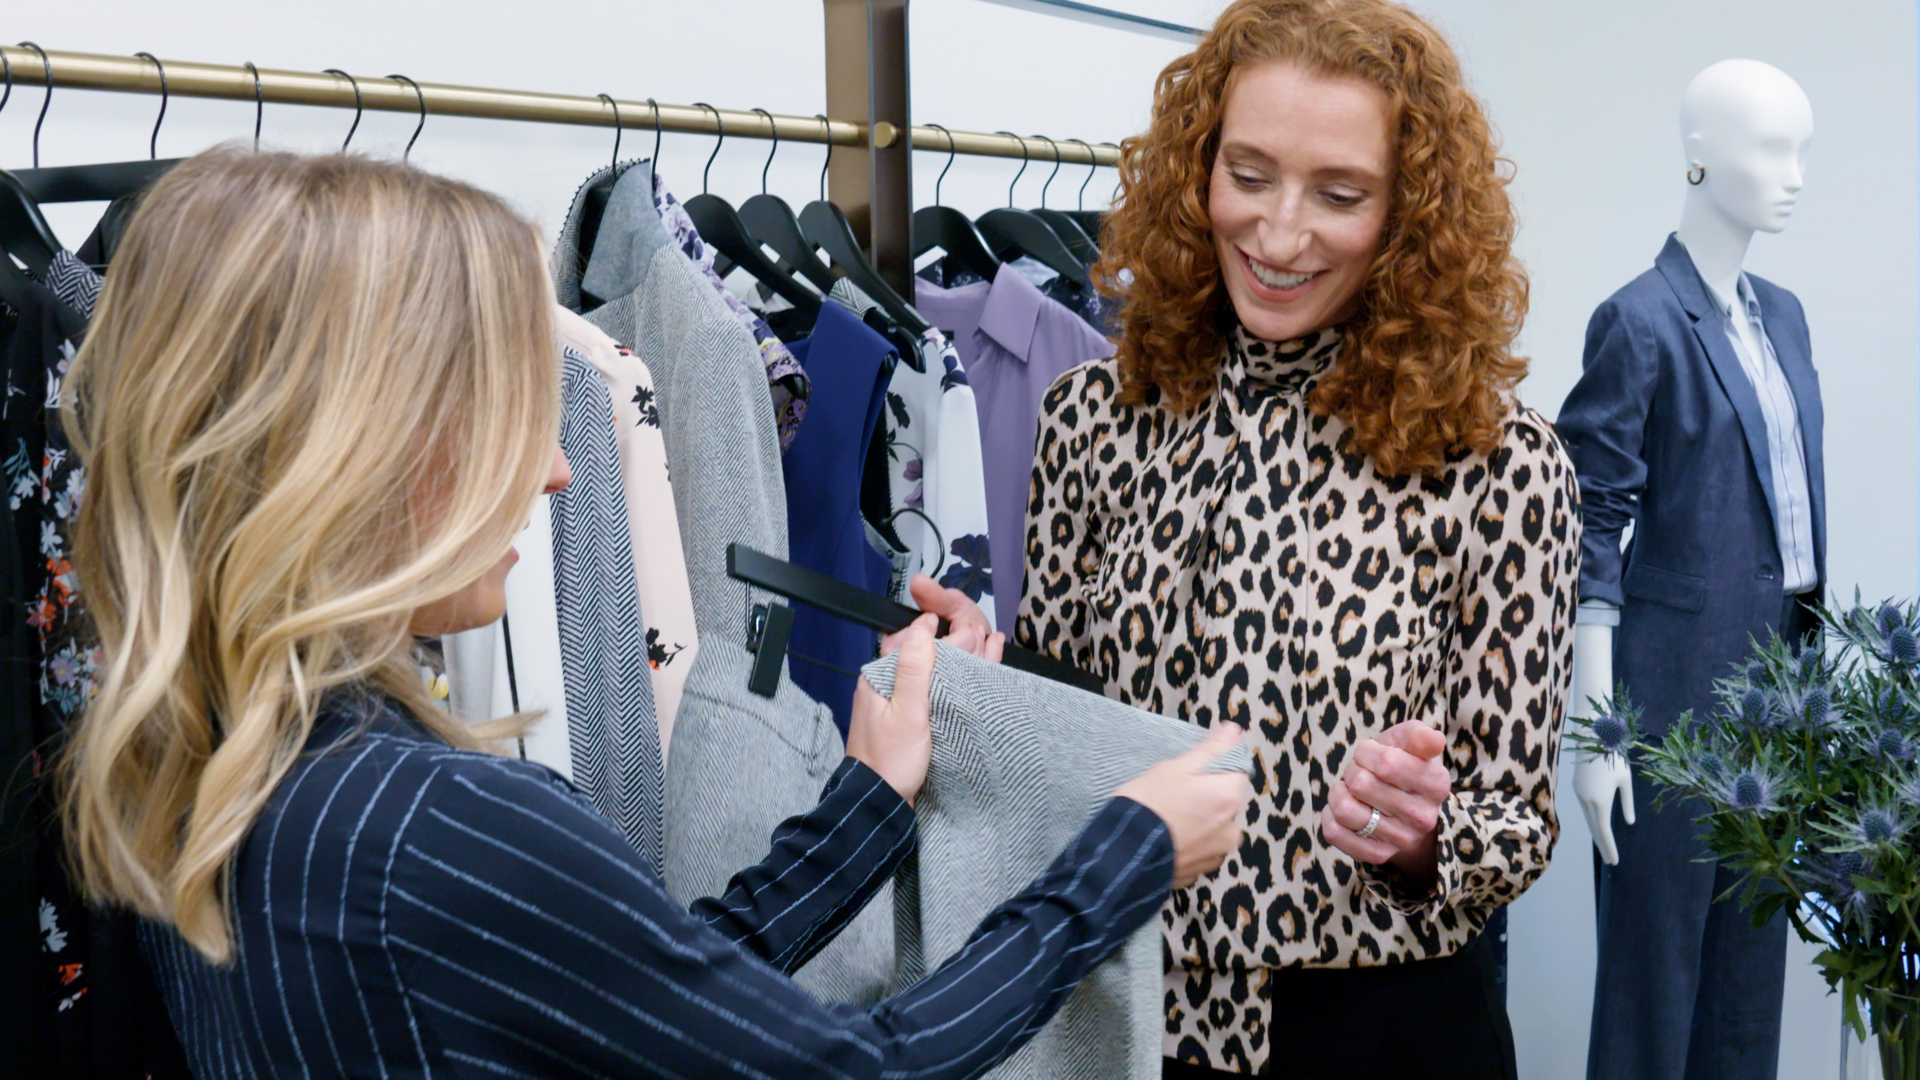 889fb53c78d Workwear is changing. Can legacy brands like Ann Taylor adapt  - CNN ...